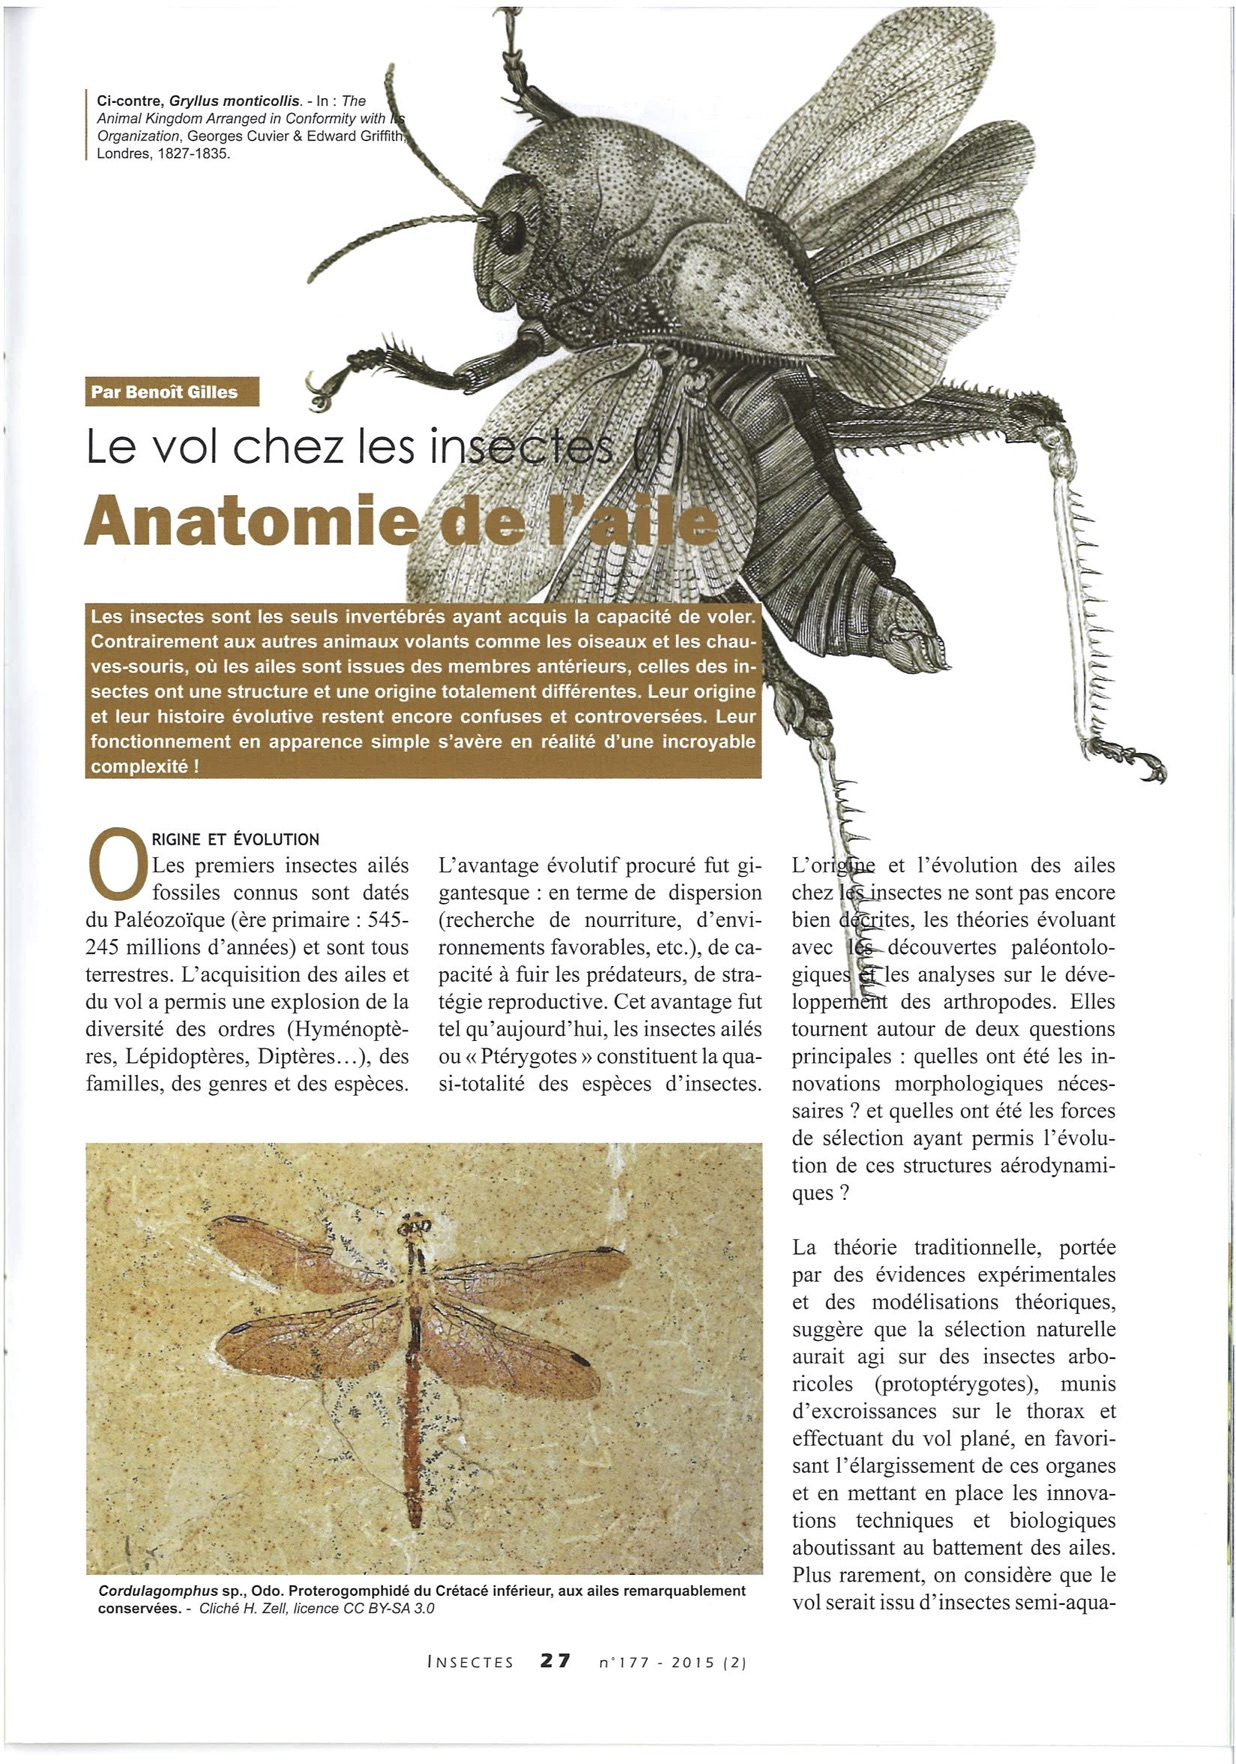 Publication in the journal Insectes – July 2015 – n°177